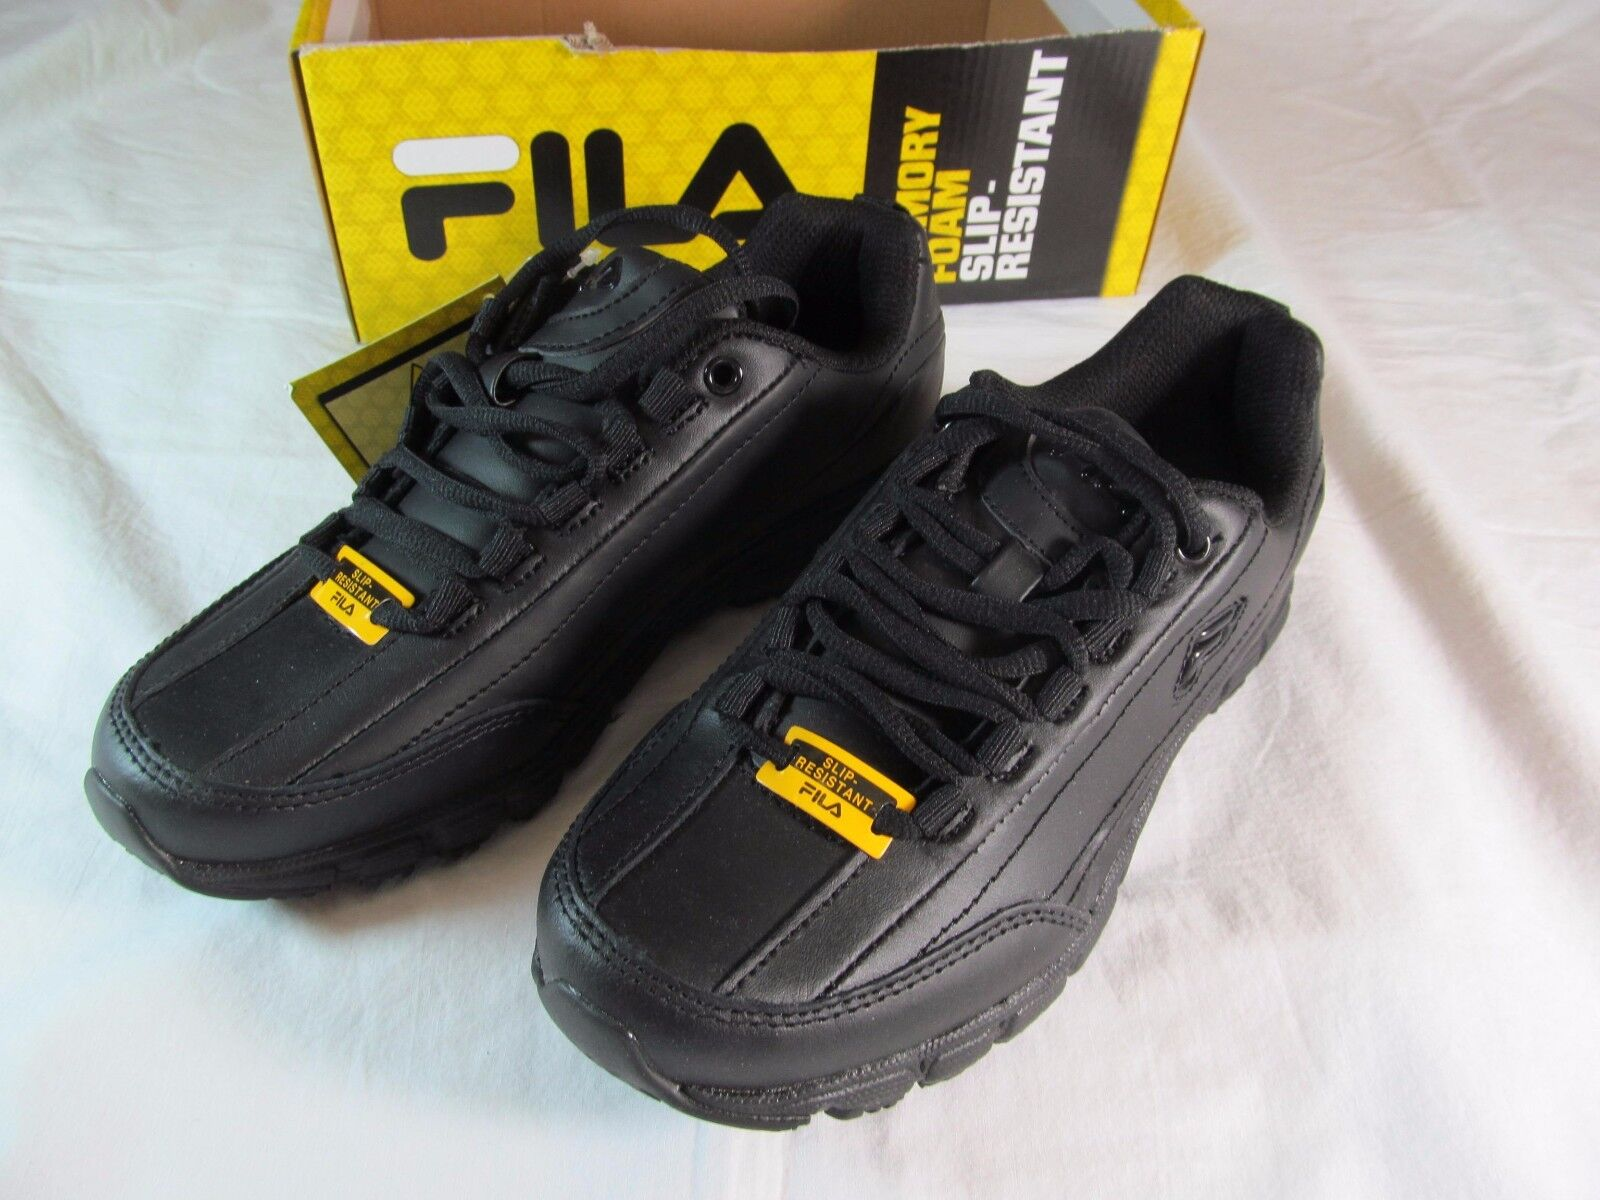 NWT Women's FILA BLACK LEATHER RUNNING ATHLETIC SHOES, Size 6.5, SLIP RESISTANT